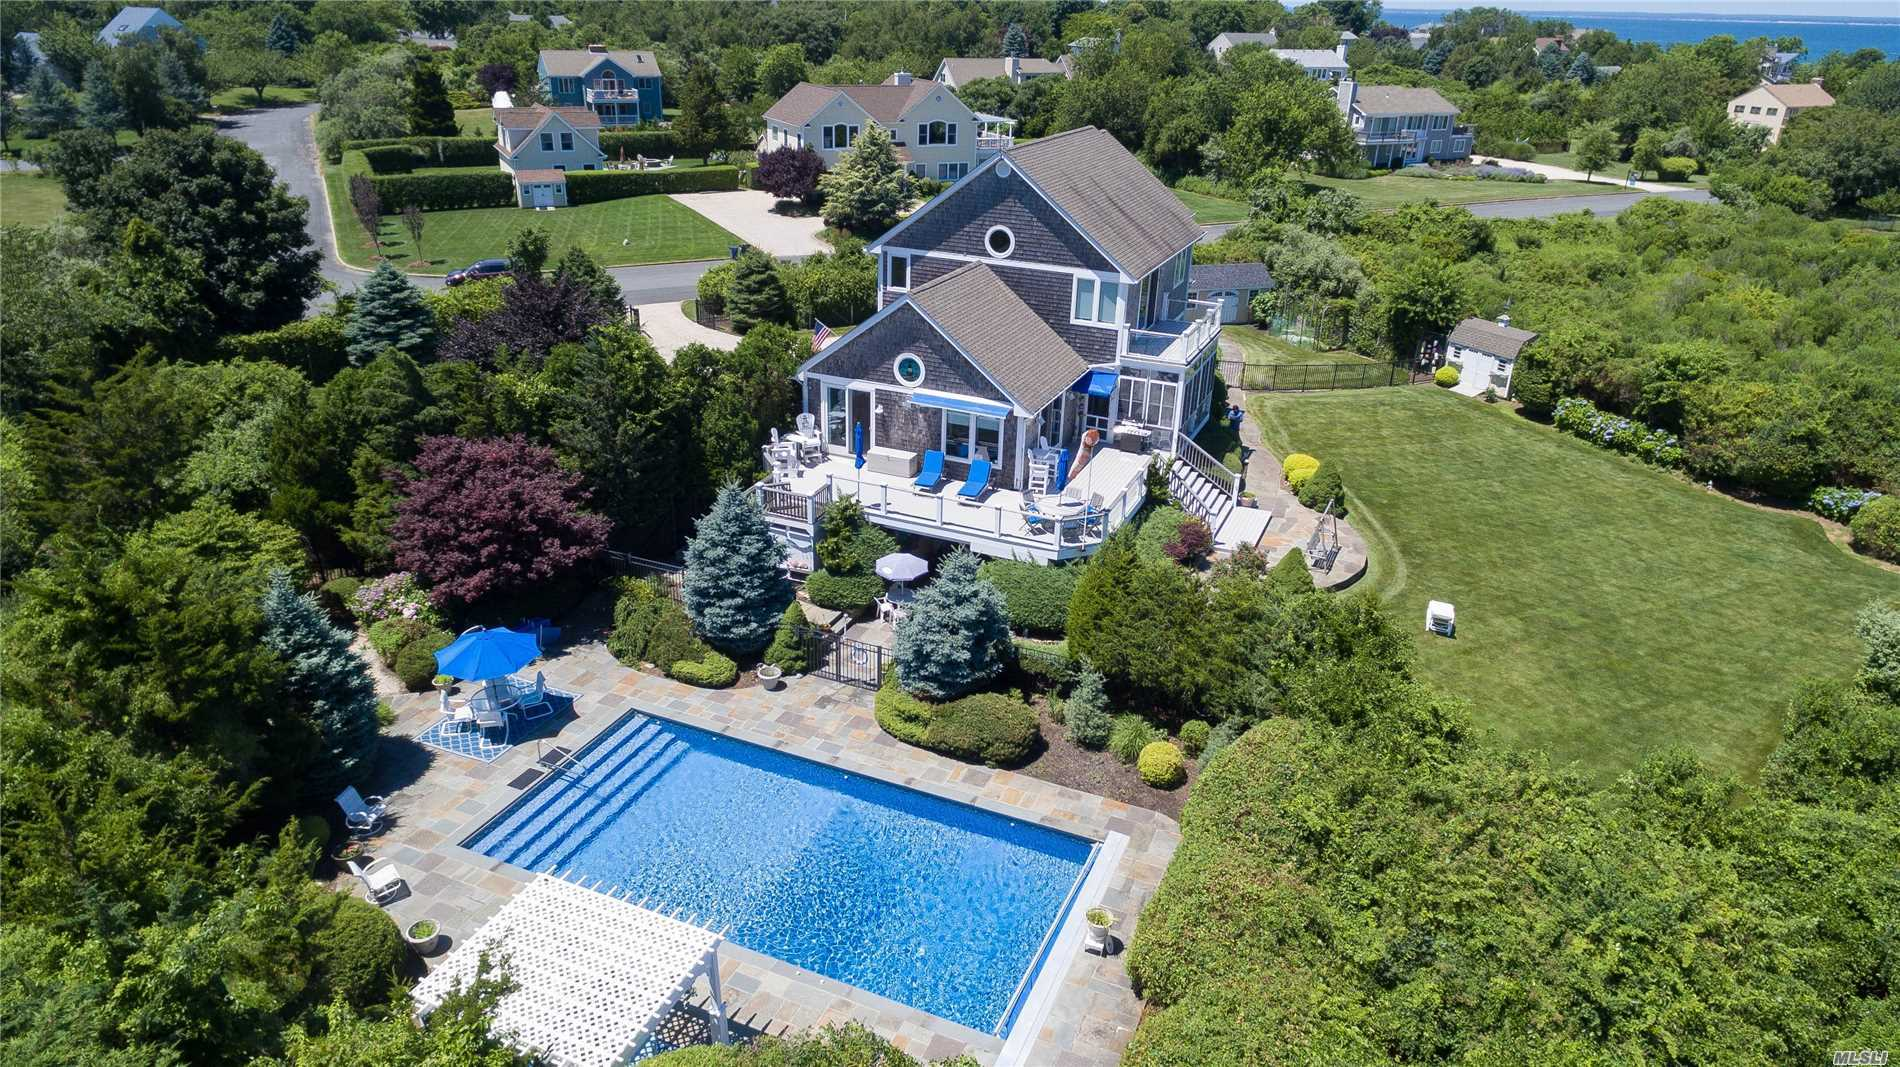 Stunning Sweeping Views Of Long Island Sound To Connecticut Including The Coffee Pot Light House Off Orient Point. This Home Adjoins Preserved Property Which Offers Forever Water-Views, Nature Trails And Beautiful Beachfront. This Shingled Style Home Was Built In 2002 Offering A Spacious Yard With In-Ground Pool, Patio And Cabana. Great Home For Entertaining.